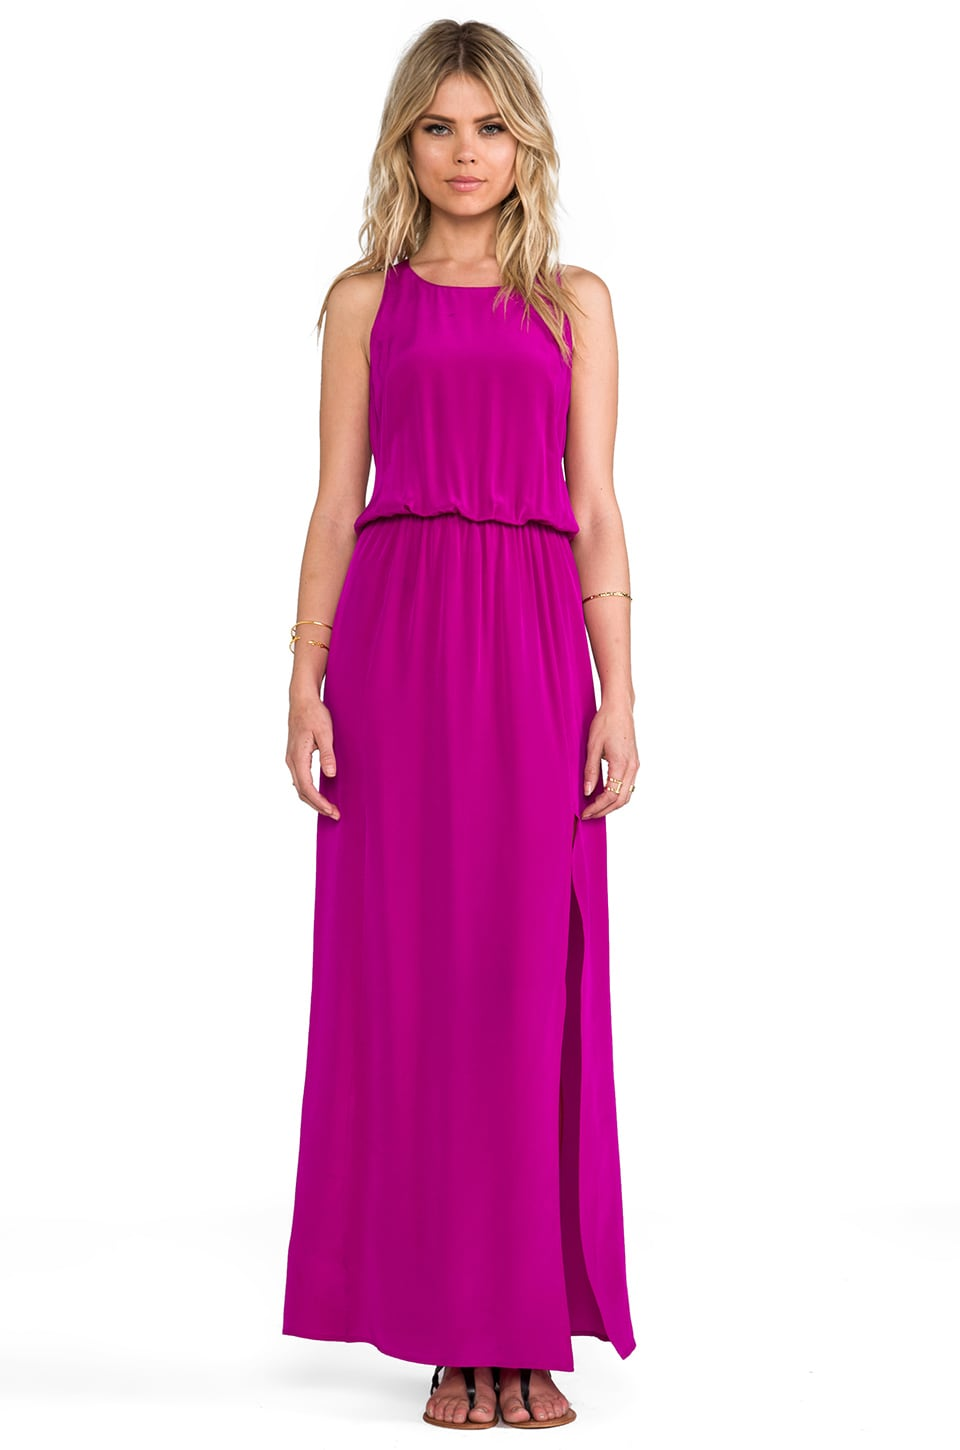 Rory Beca Flores Racer Back Maxi Dress in Crush